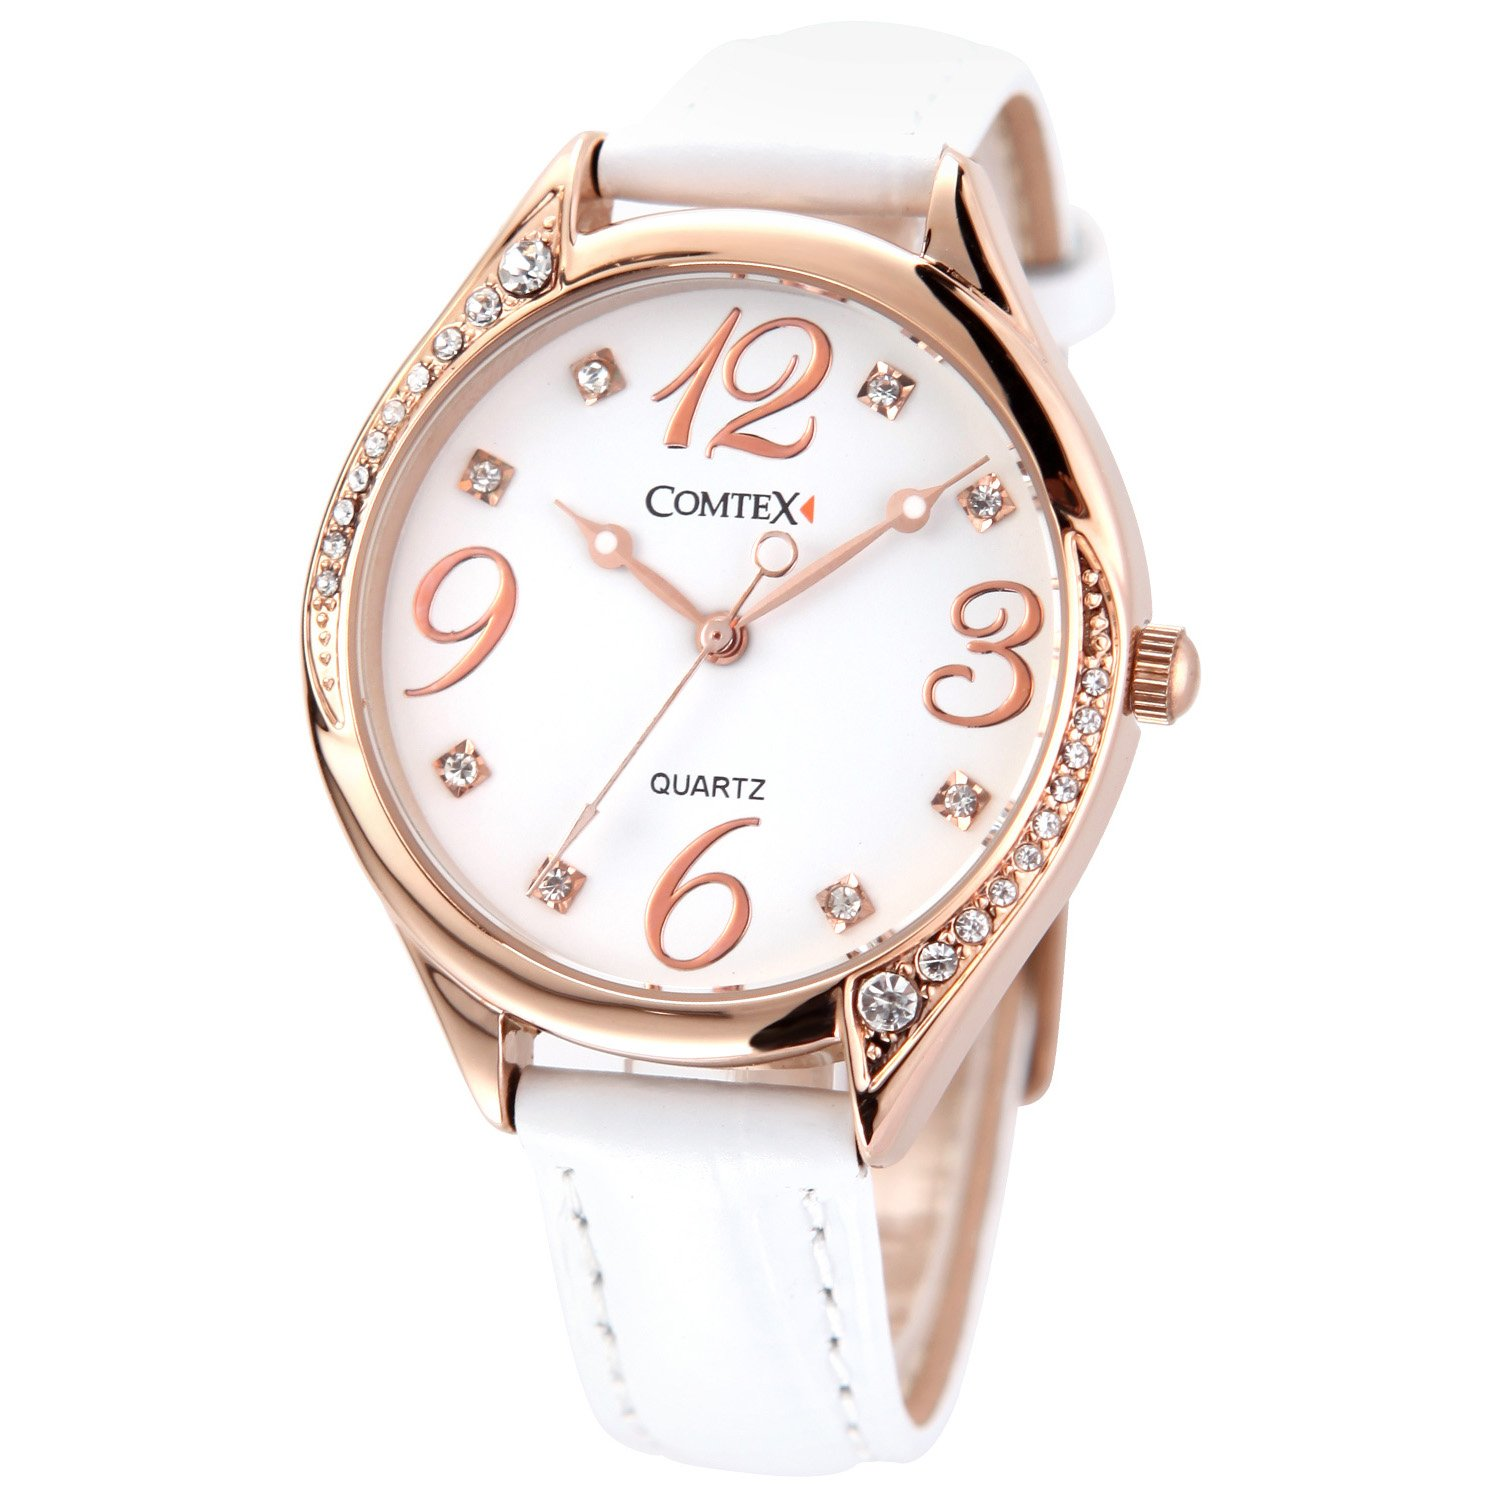 Amazon.com  Comtex Watches for Women Analog Quartz White Leather Large  Number Rose Gold Dial with Crystals Wristwatch Gifts  Watches 78056834d